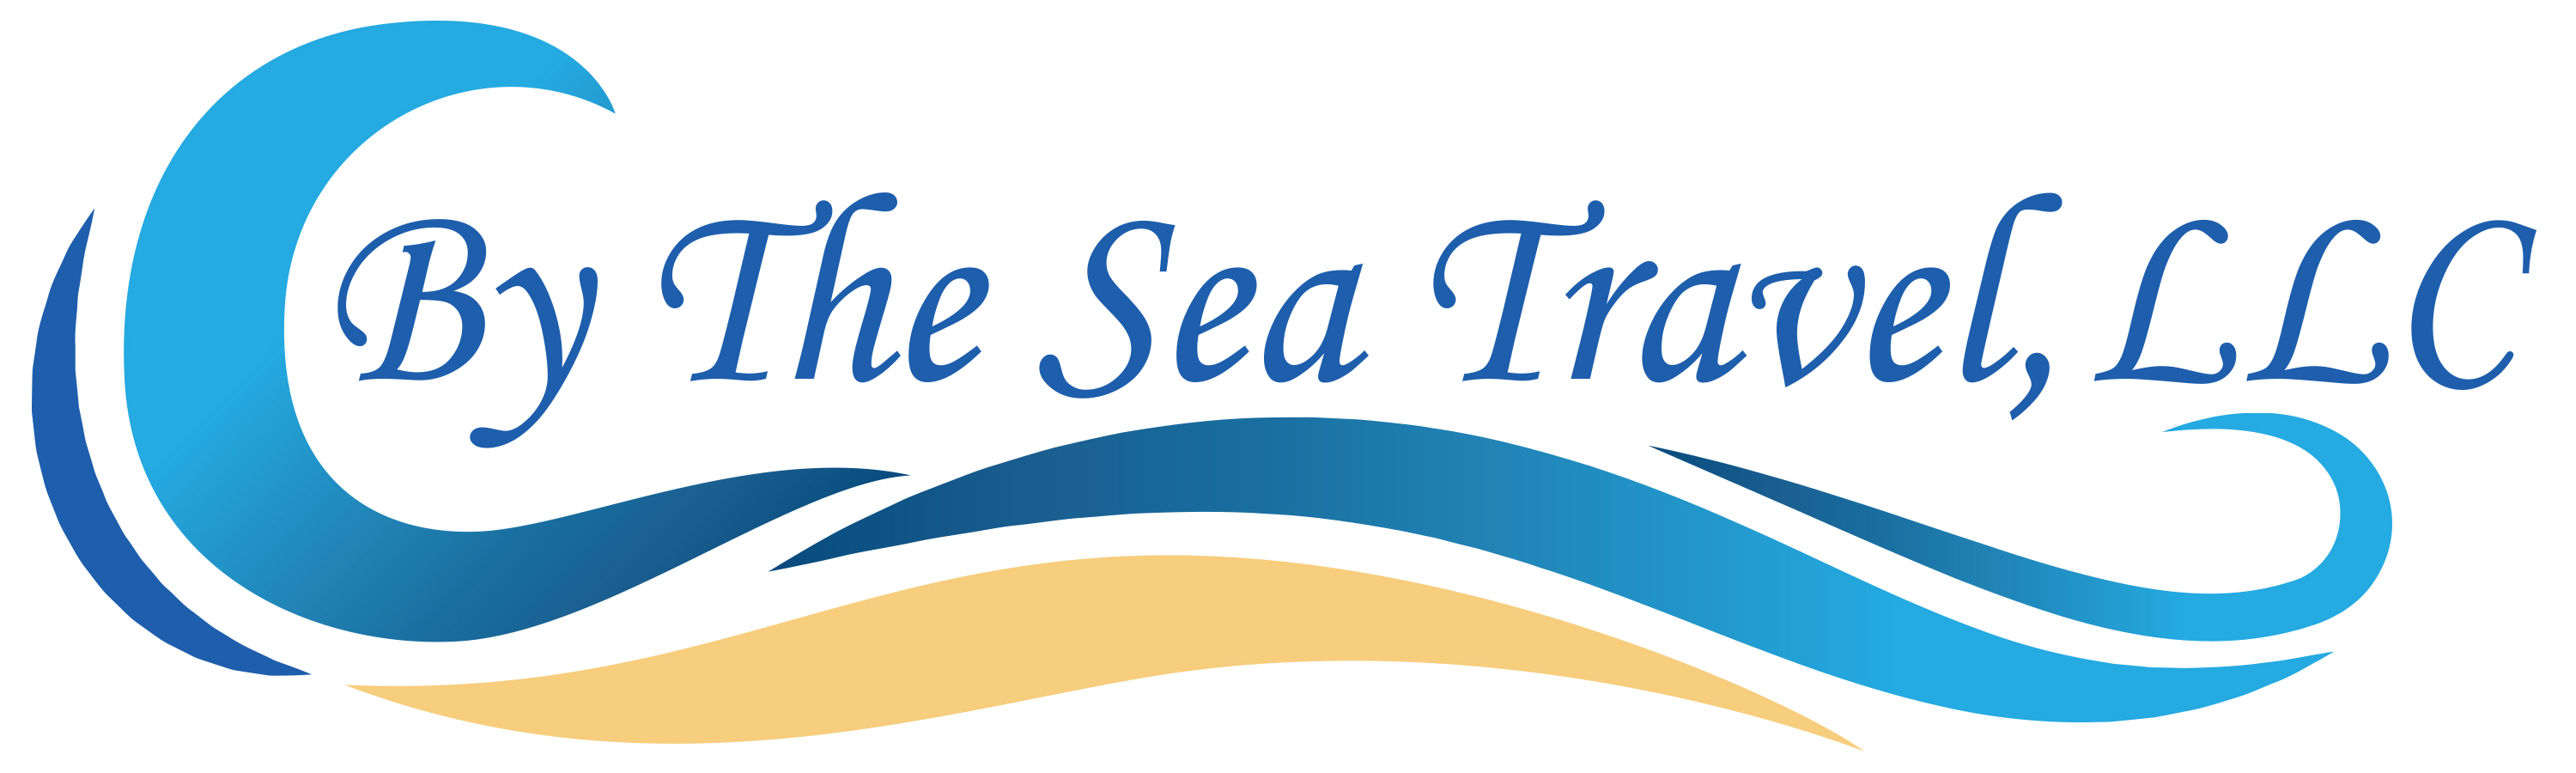 By the Sea Travel LLC